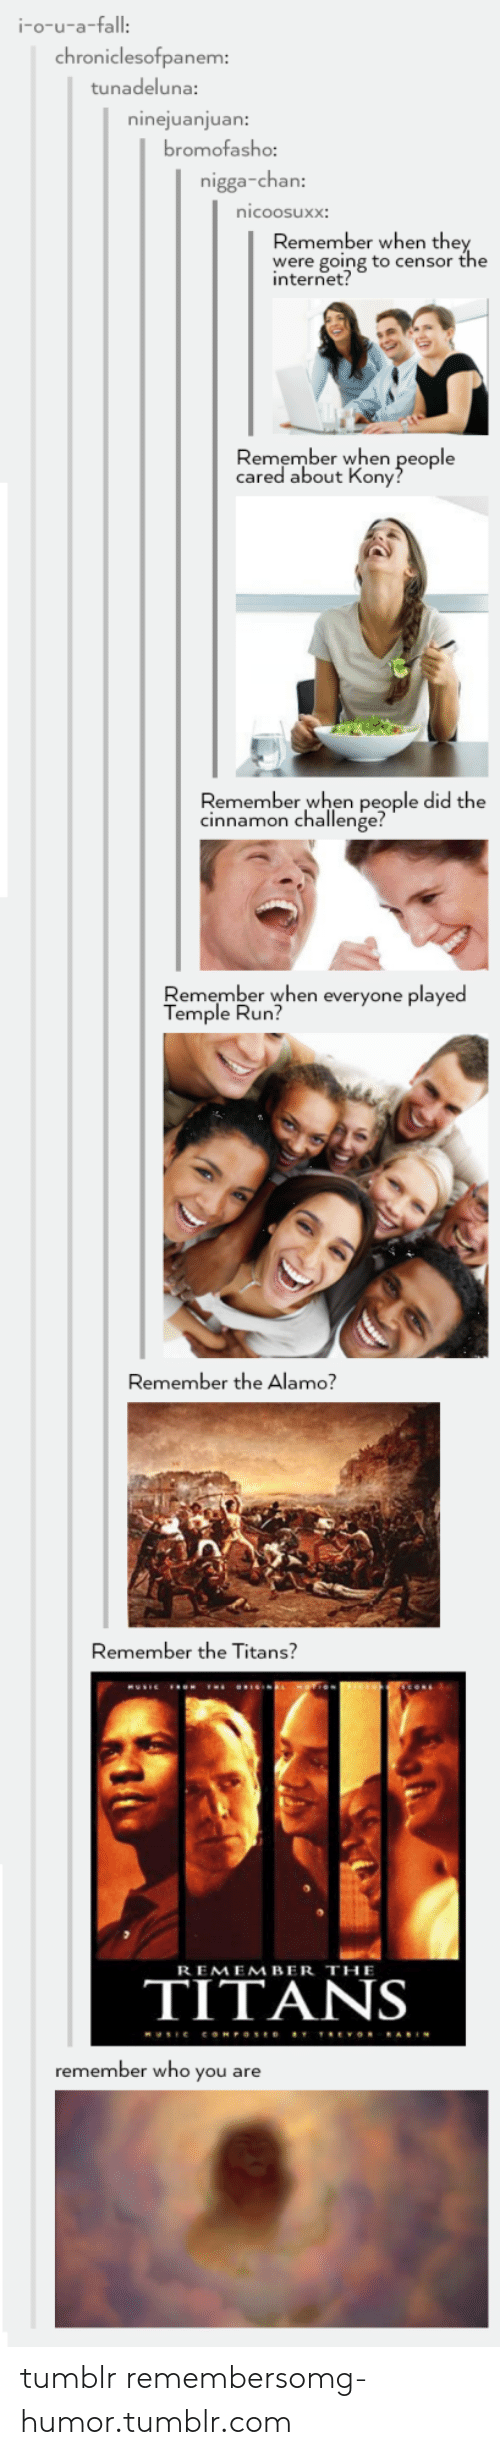 Remember the Titans: i-o-u-a-fall  chroniclesofpanem  tunadeluna:  ninejuanjuan:  romofasho:  nigga-chan  nicoosuxx:  Remember when the  were going to censor the  internet  Remember when people  cared about Kony  Remember when people did the  cinnamon challenge?  Remember when everyone played  Temple Run?  Remember the Alamo?  Remember the Titans?  REMEMBER THE  TITANS  remember who you are tumblr remembersomg-humor.tumblr.com